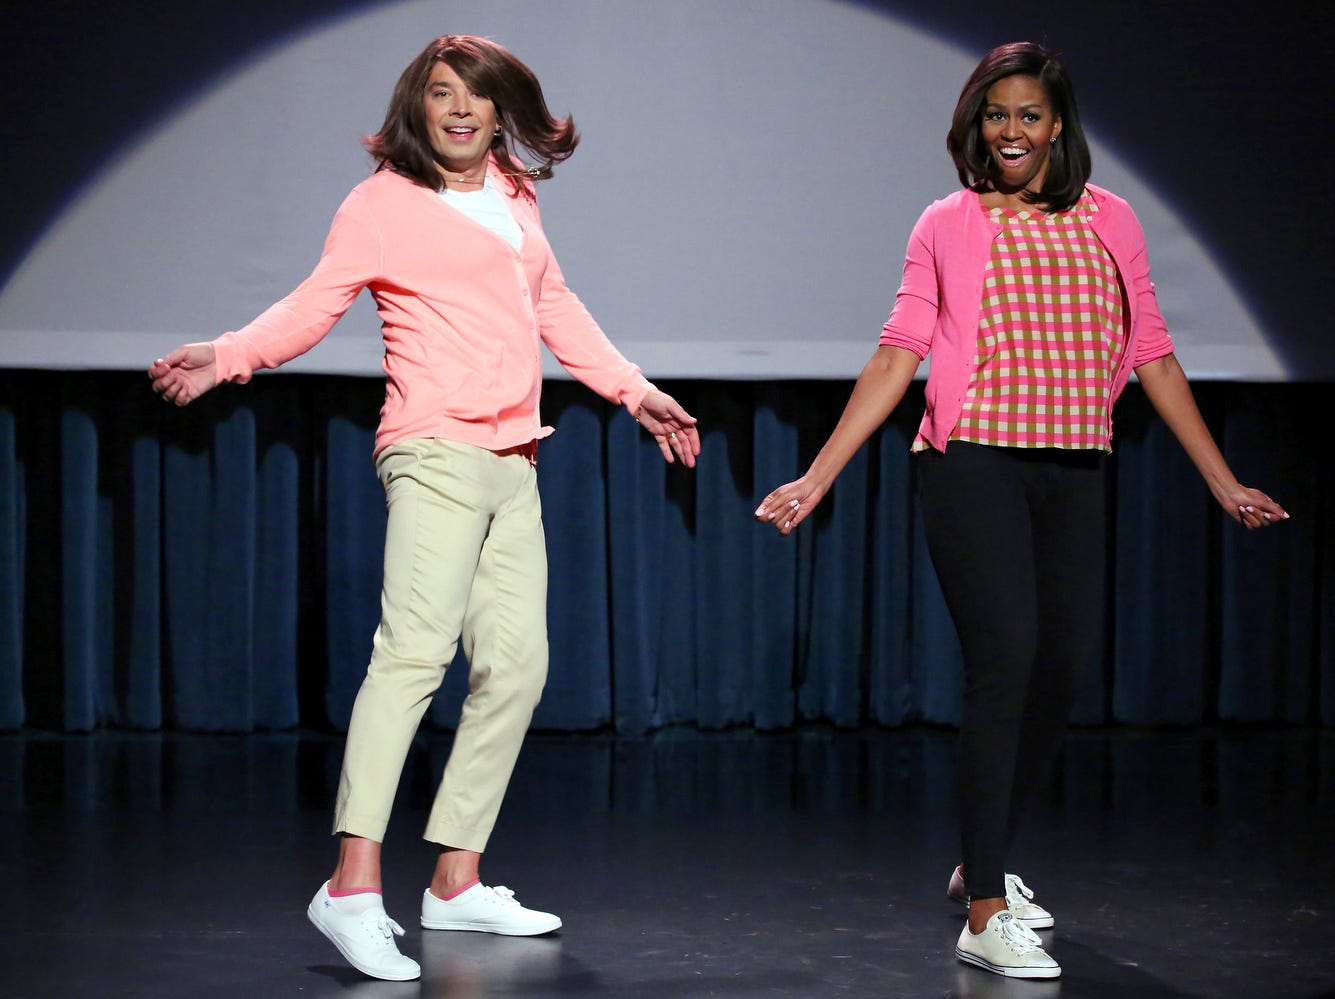 """Host Jimmy Fallon and First Lady Michelle Obama during the """"Evolution of Mom Dancing Part 2"""" skit on """"The Tonight Show Starring Jimmy Fallon"""" April 2, 2015.  CREDIT: Douglas Gorenstein, NBC ORG XMIT: Season: 2 [Via MerlinFTP Drop]"""